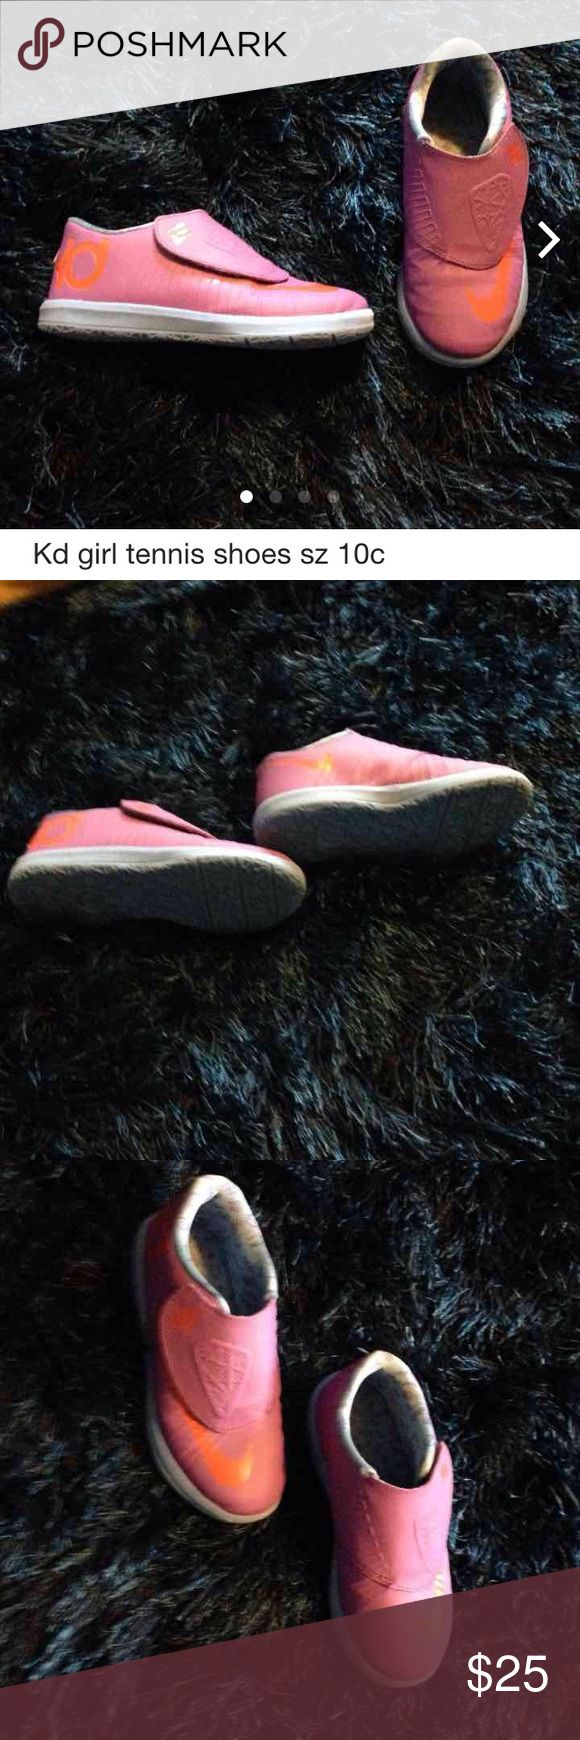 Nike KD girl tennis shoes 10c Good condition Nike Shoes Sneakers